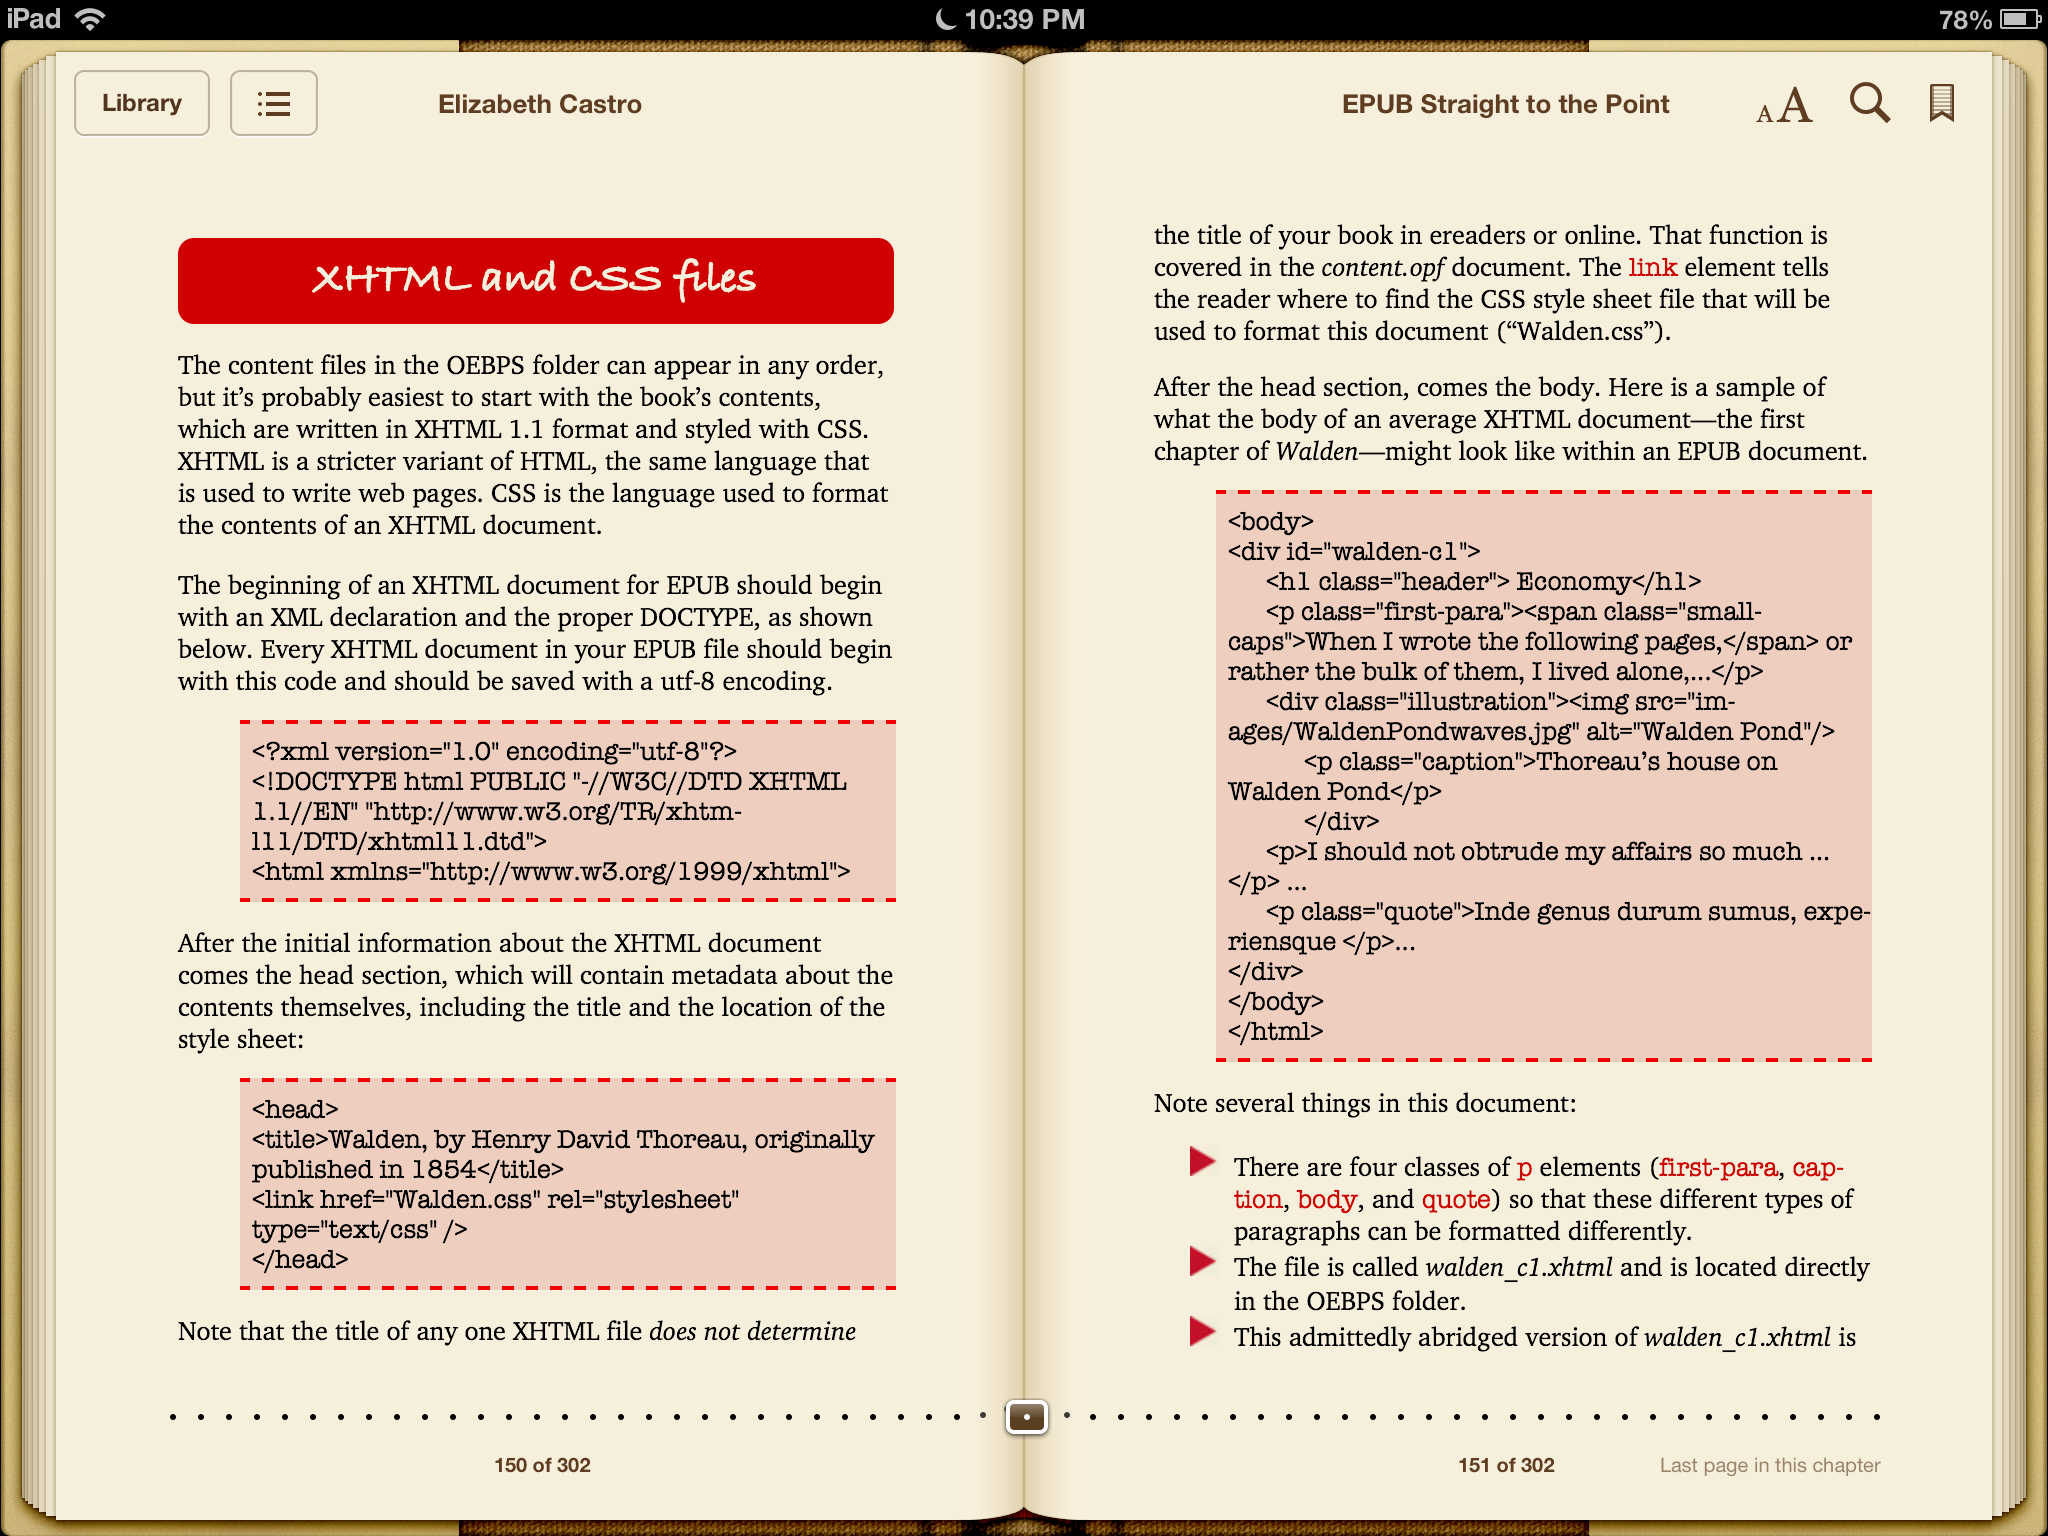 iBooks can handle standard ePub and PDF files in addition to books purchased from the iBookstore.